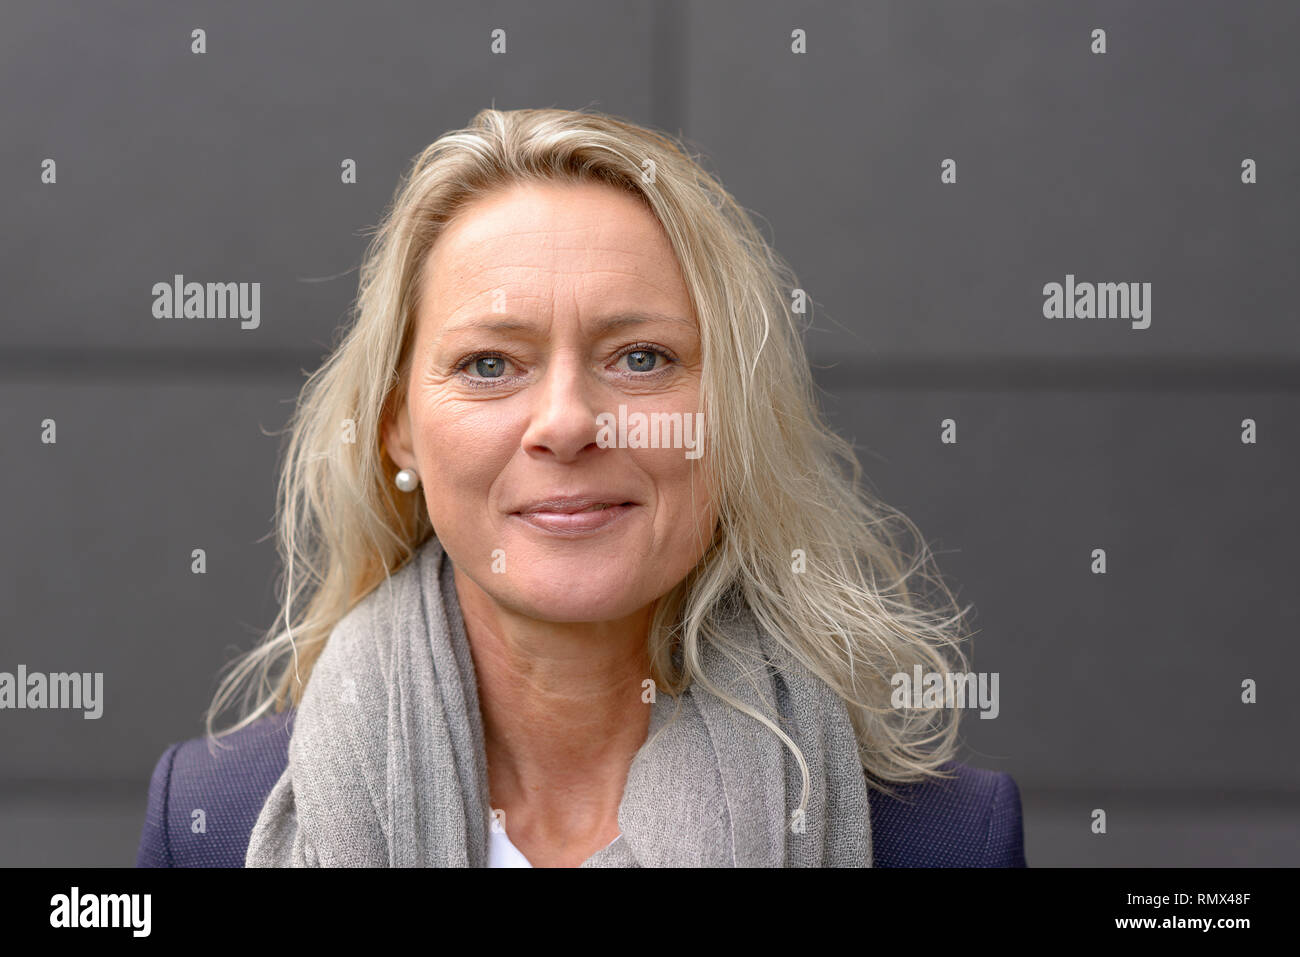 Mature attractive grey woman with tousled shoulder length hair looking friendly at the camera with a quiet smile in front of a grey wall - Stock Image